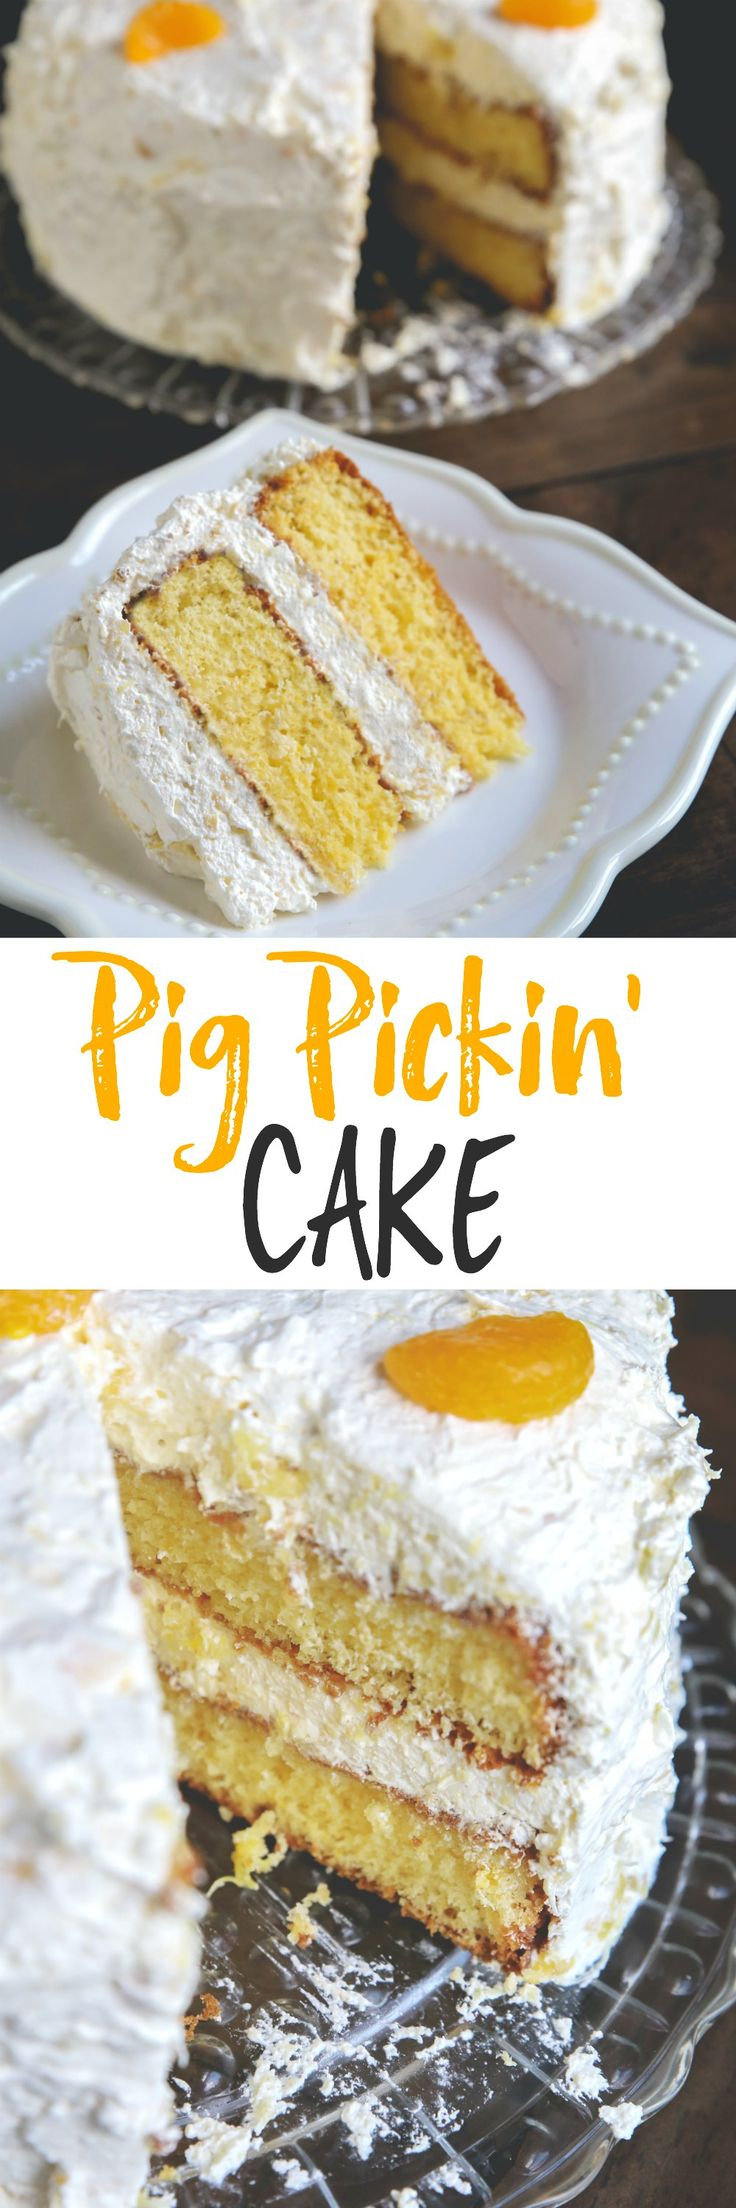 The perfect summer cake for cookouts and potlucks - the pig pickin' cake! It's a southern classic!